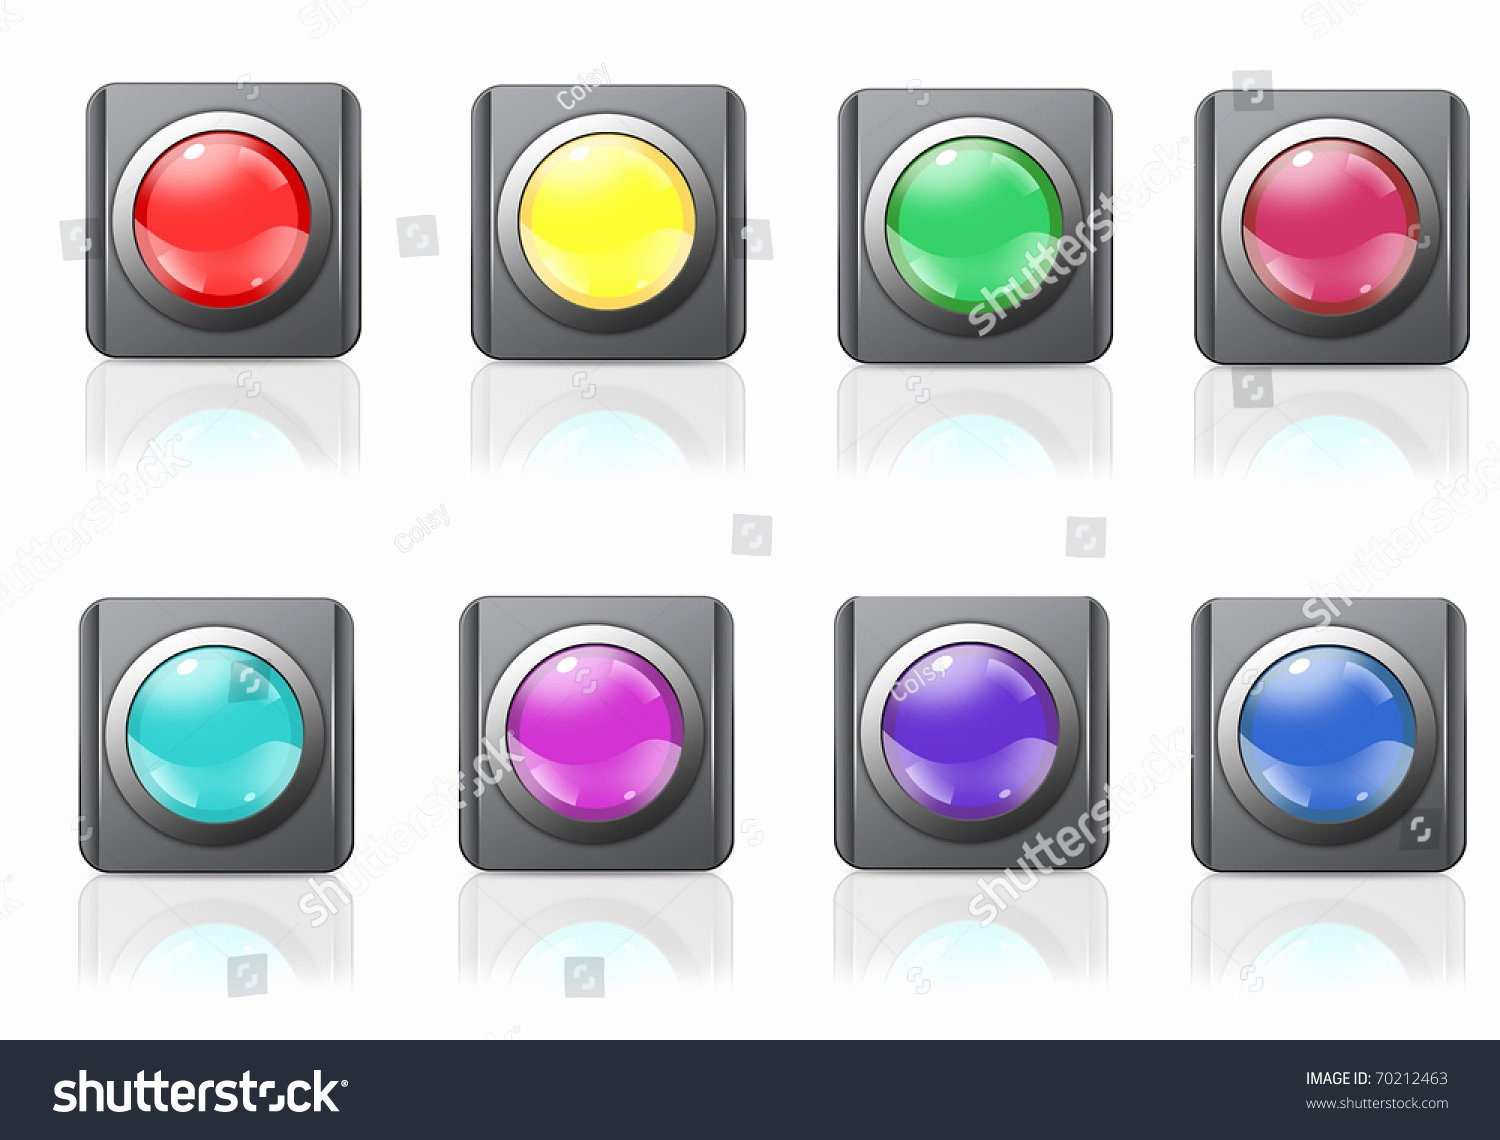 Design A button Template Fresh Logo Icon button Blanks Blank Templates Stock Illustration